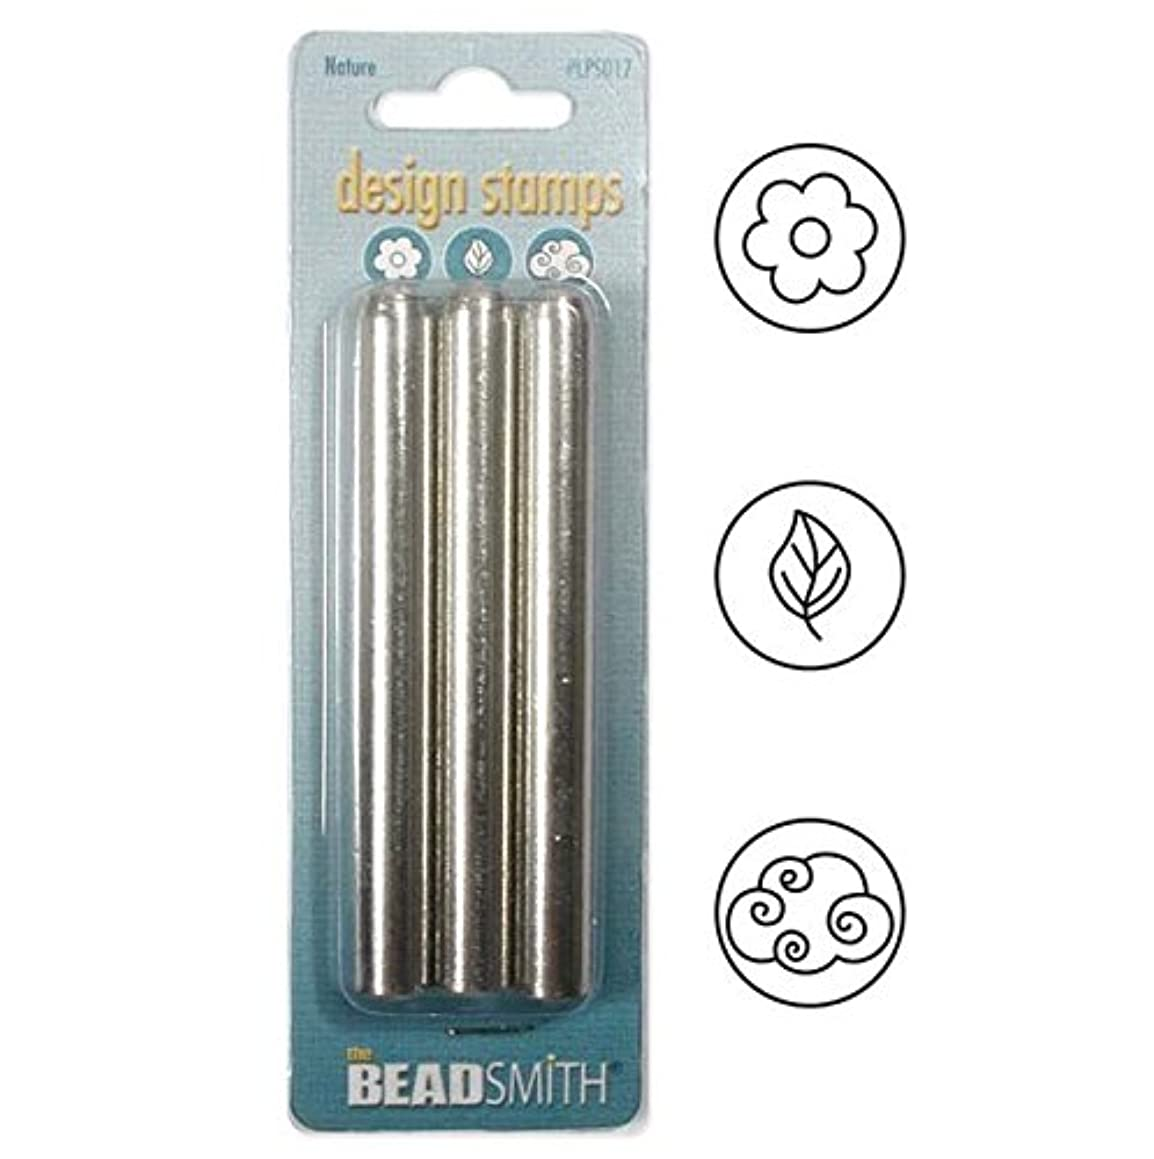 BeadSmith XTL-0762 3 Piece 'Nature' Punch Stamp Set, 5mm/3/16